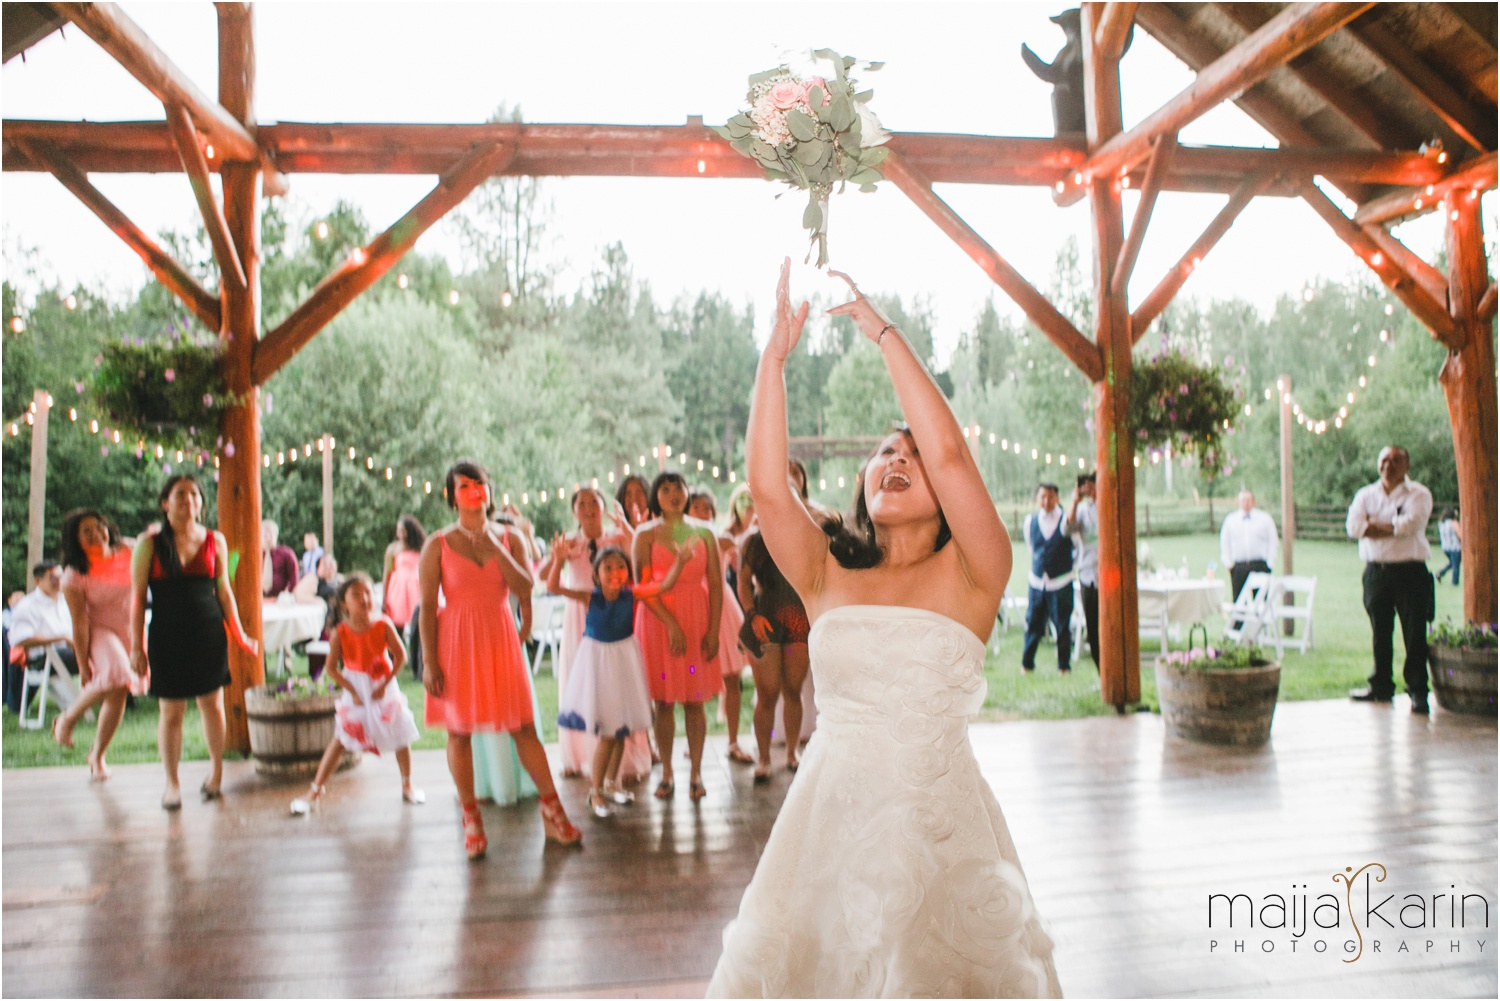 Mountain-Springs-Lodge-Leavenworth-Washington-Wedding-Photographer-Majiin-Karin-Photography_71.jpg